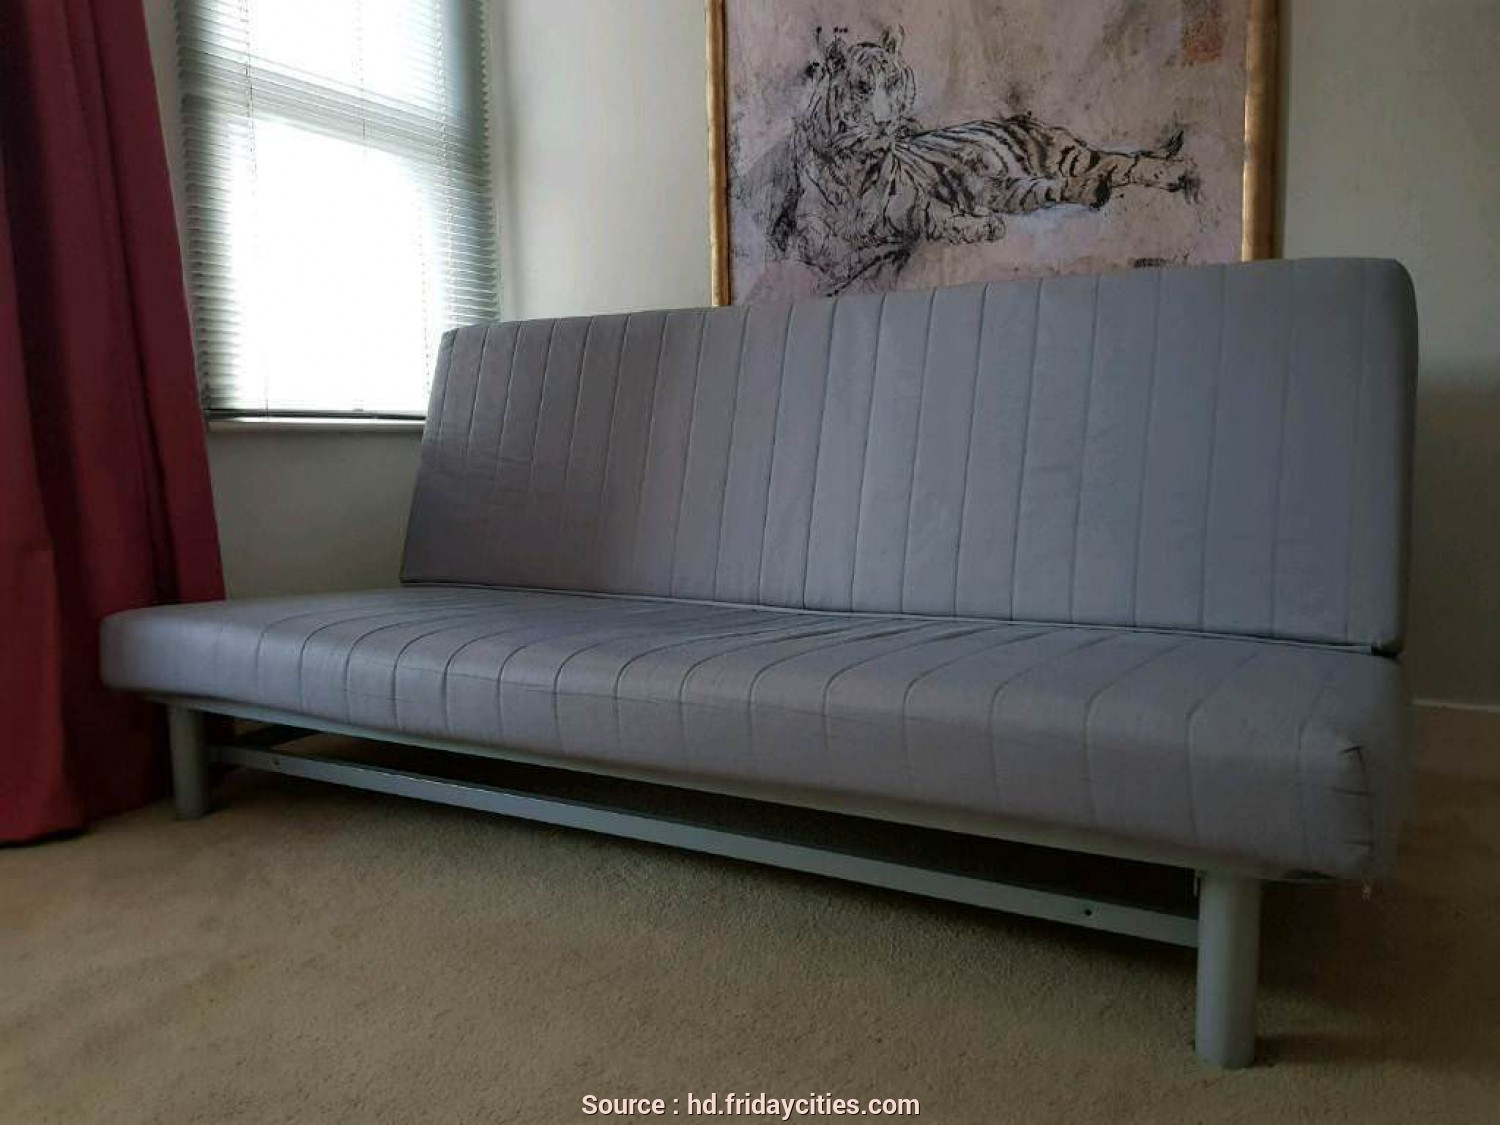 Beddinge Sofa Ikea, Bello Ikea Beddinge Lovas Sofa, Uk Ikea Beddinge Sofa King Sofa